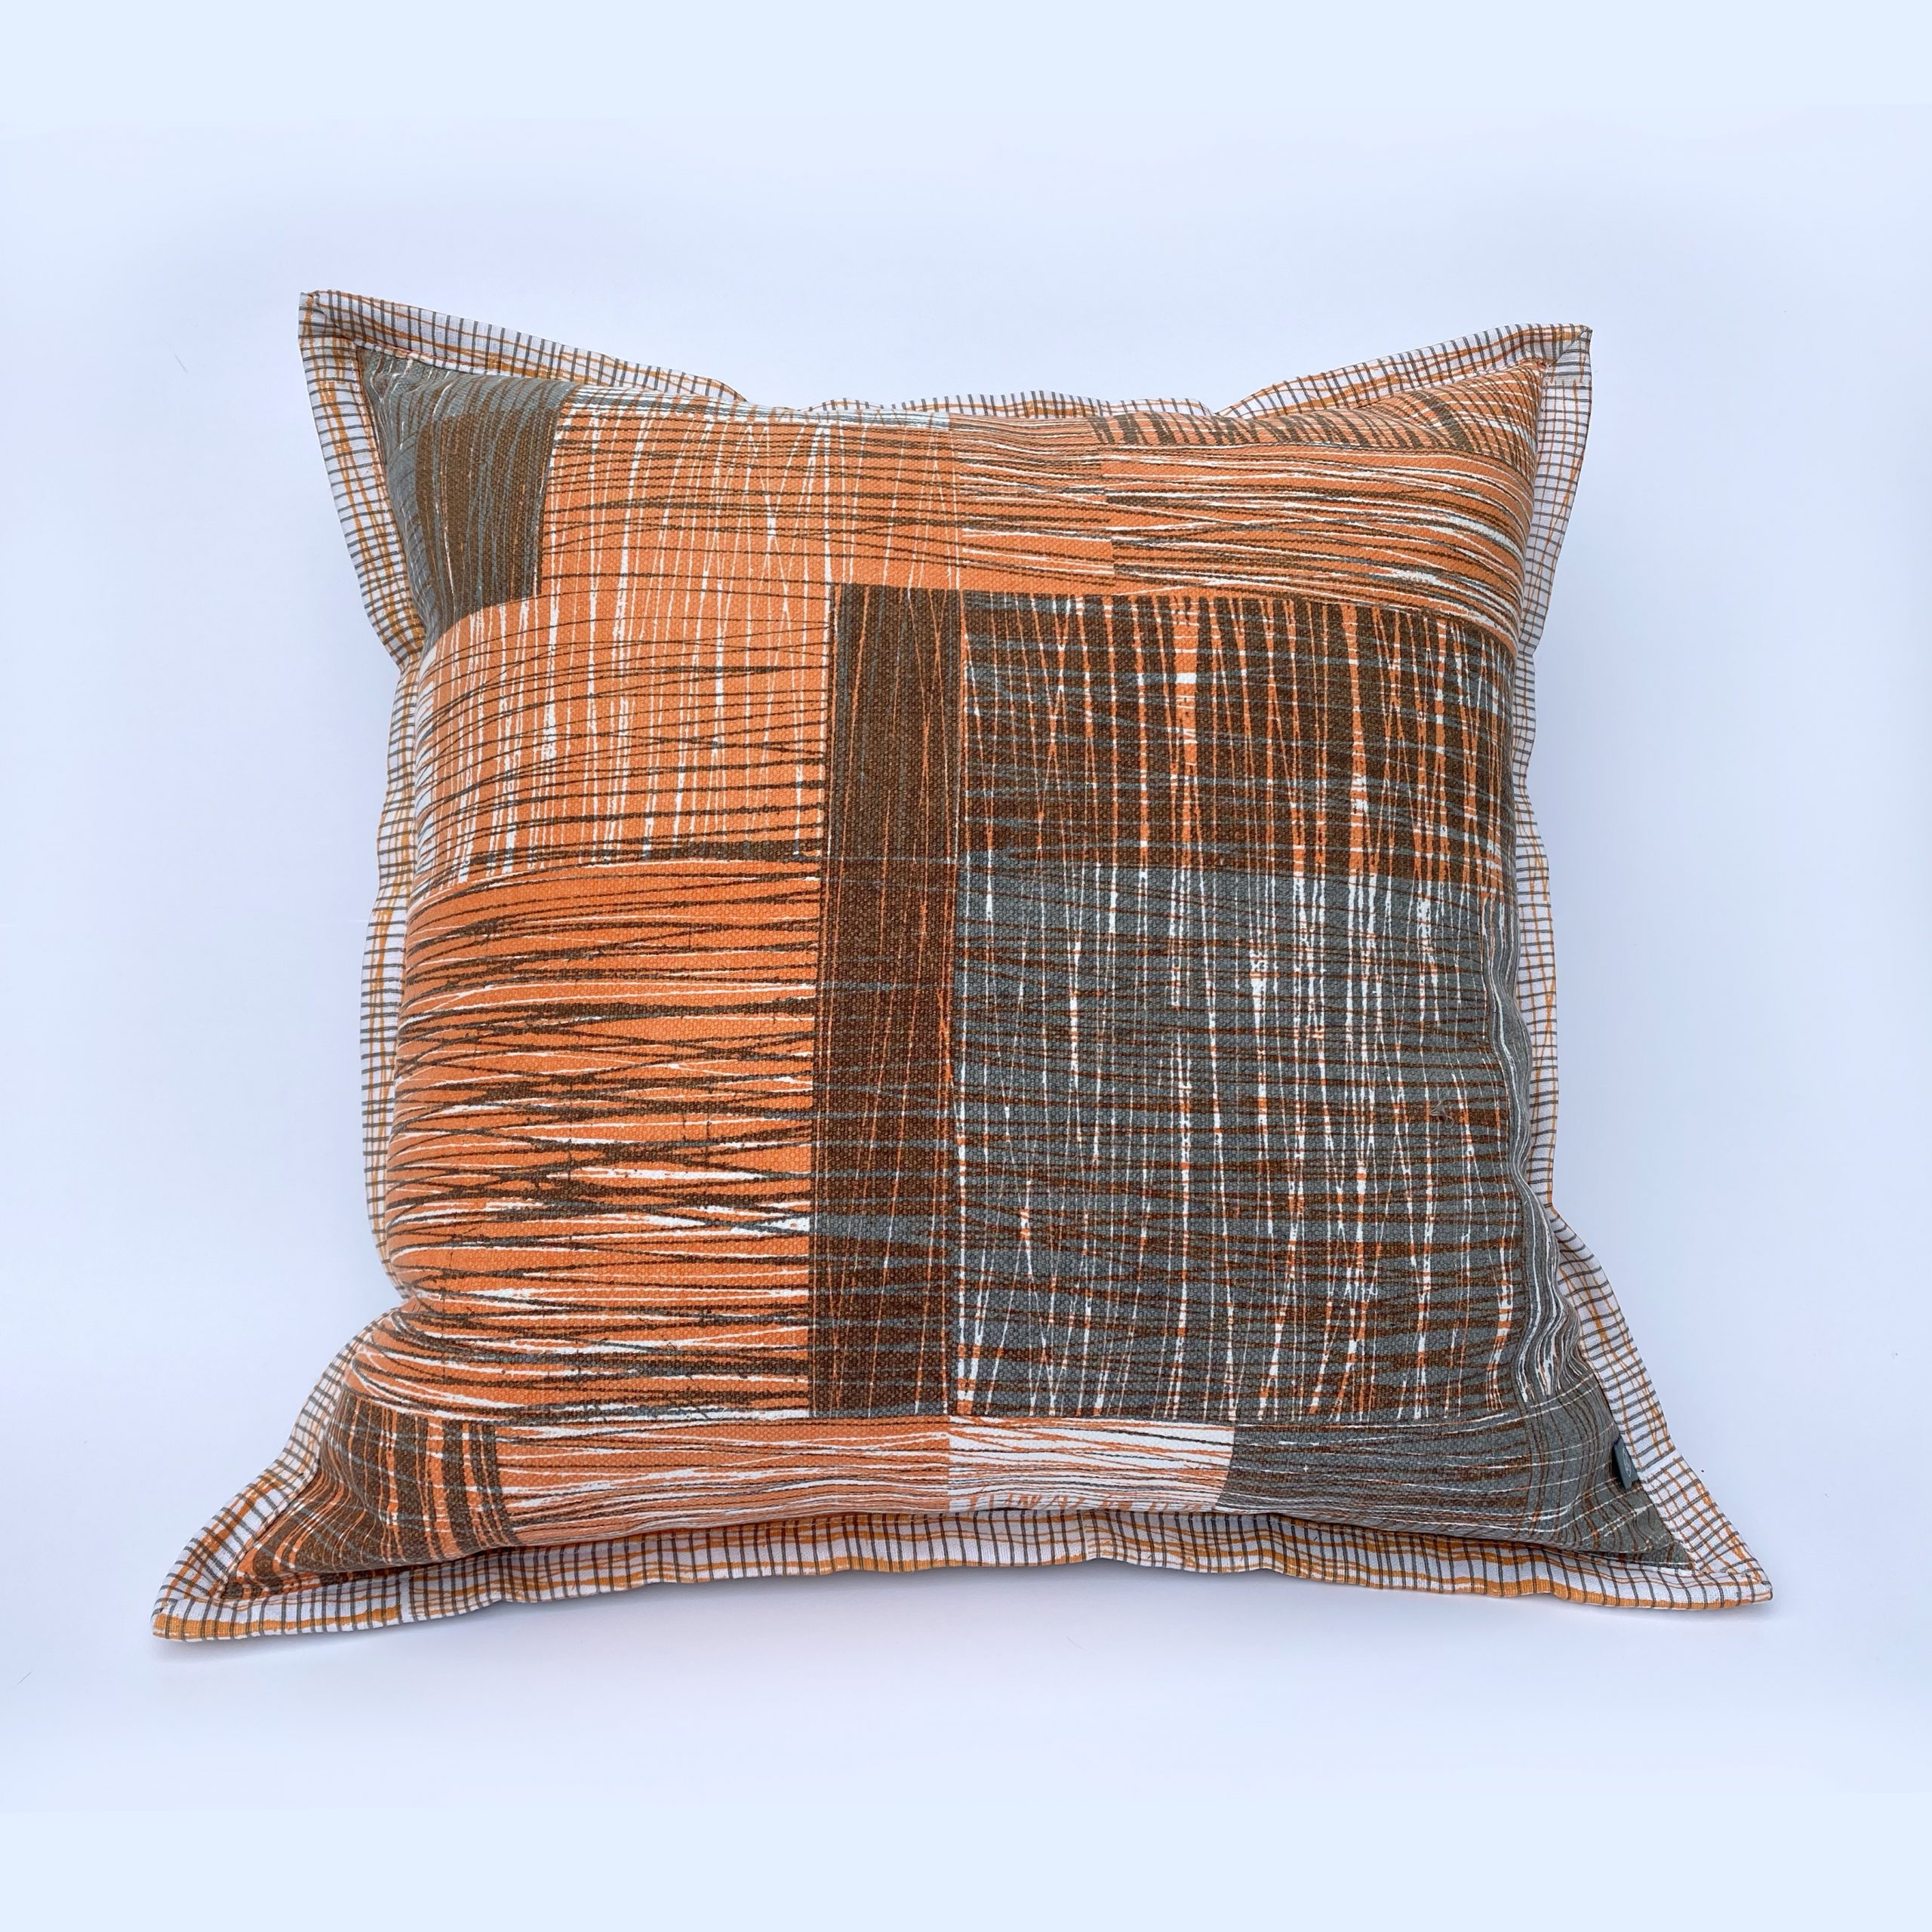 Handprinted cushion featuring original  'Scratch' design with complementary border.